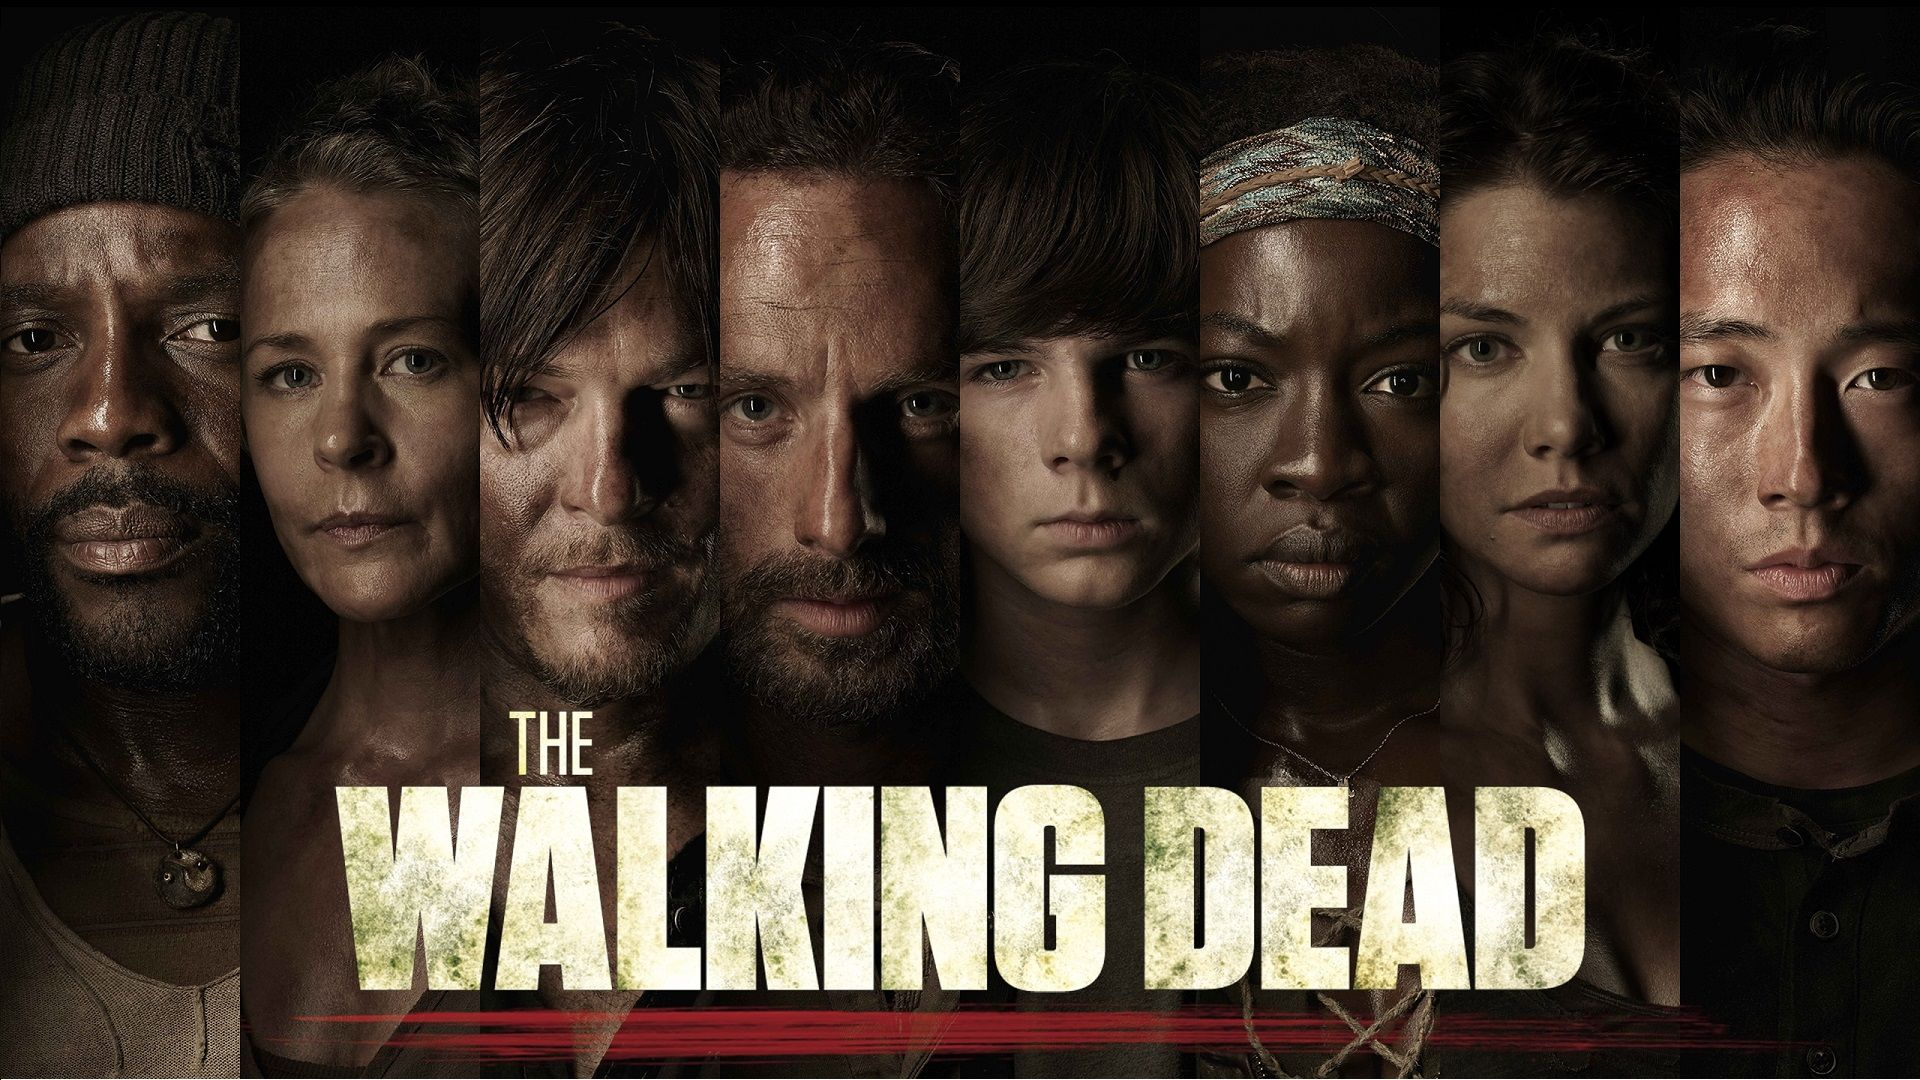 The Walking Dead Wallpaper 1920x1080 The Walking Dead Poster